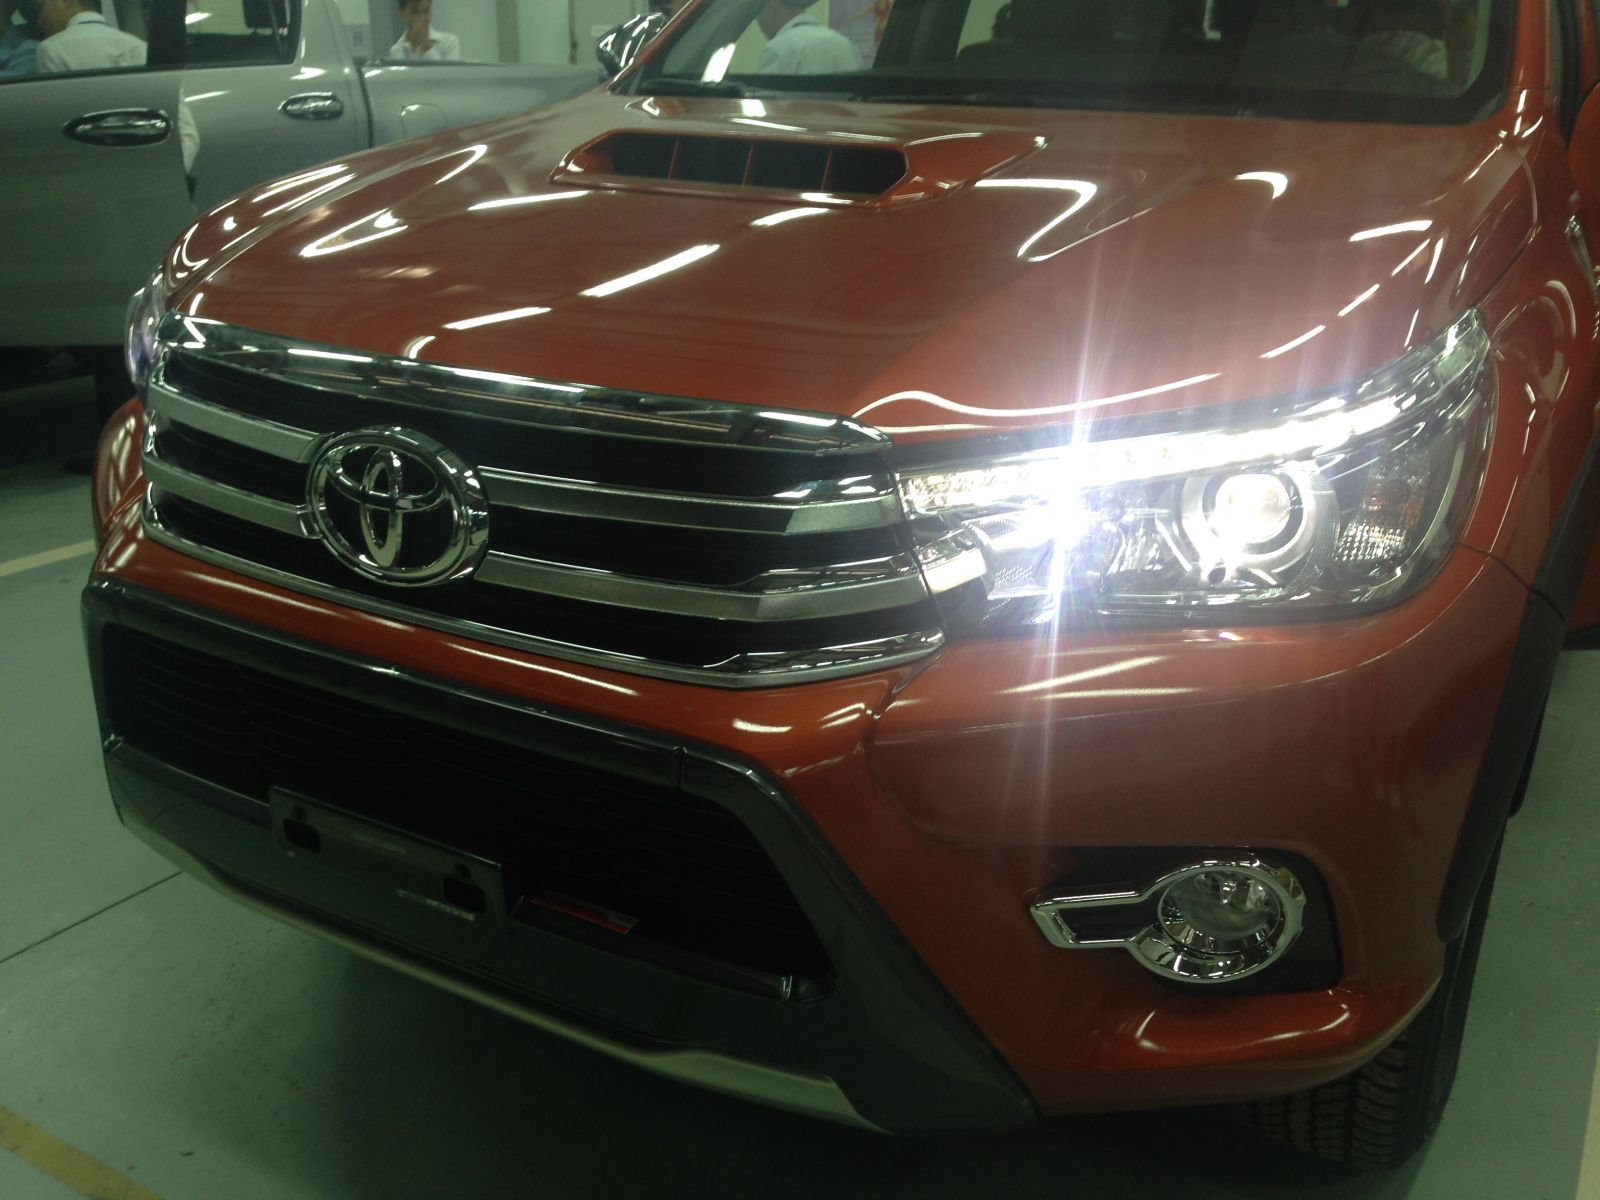 Automark special 2016 toyota hilux 2 8 gd 6 raised body raider double cab a t pinterest toyota hilux toyota and 4x4